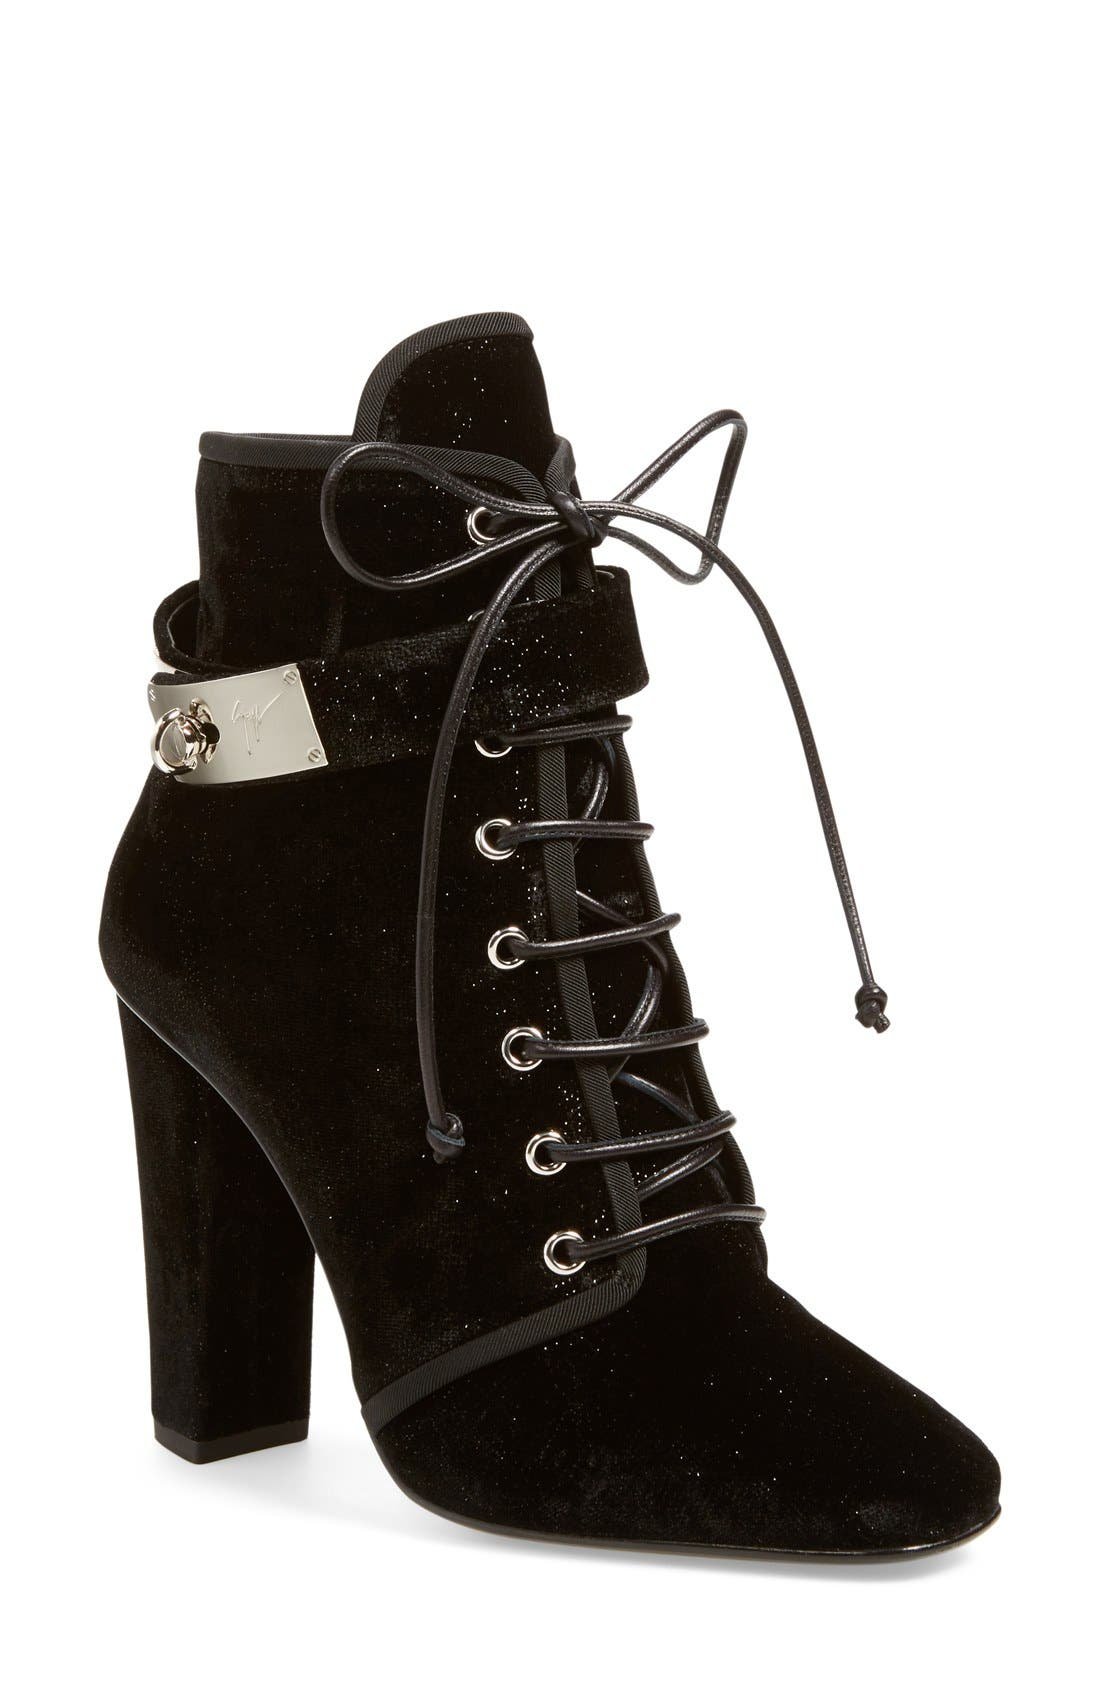 Alternate Image 1 Selected - Giuseppe Zanotti 'Alabama' Lace-Up Bootie (Women)